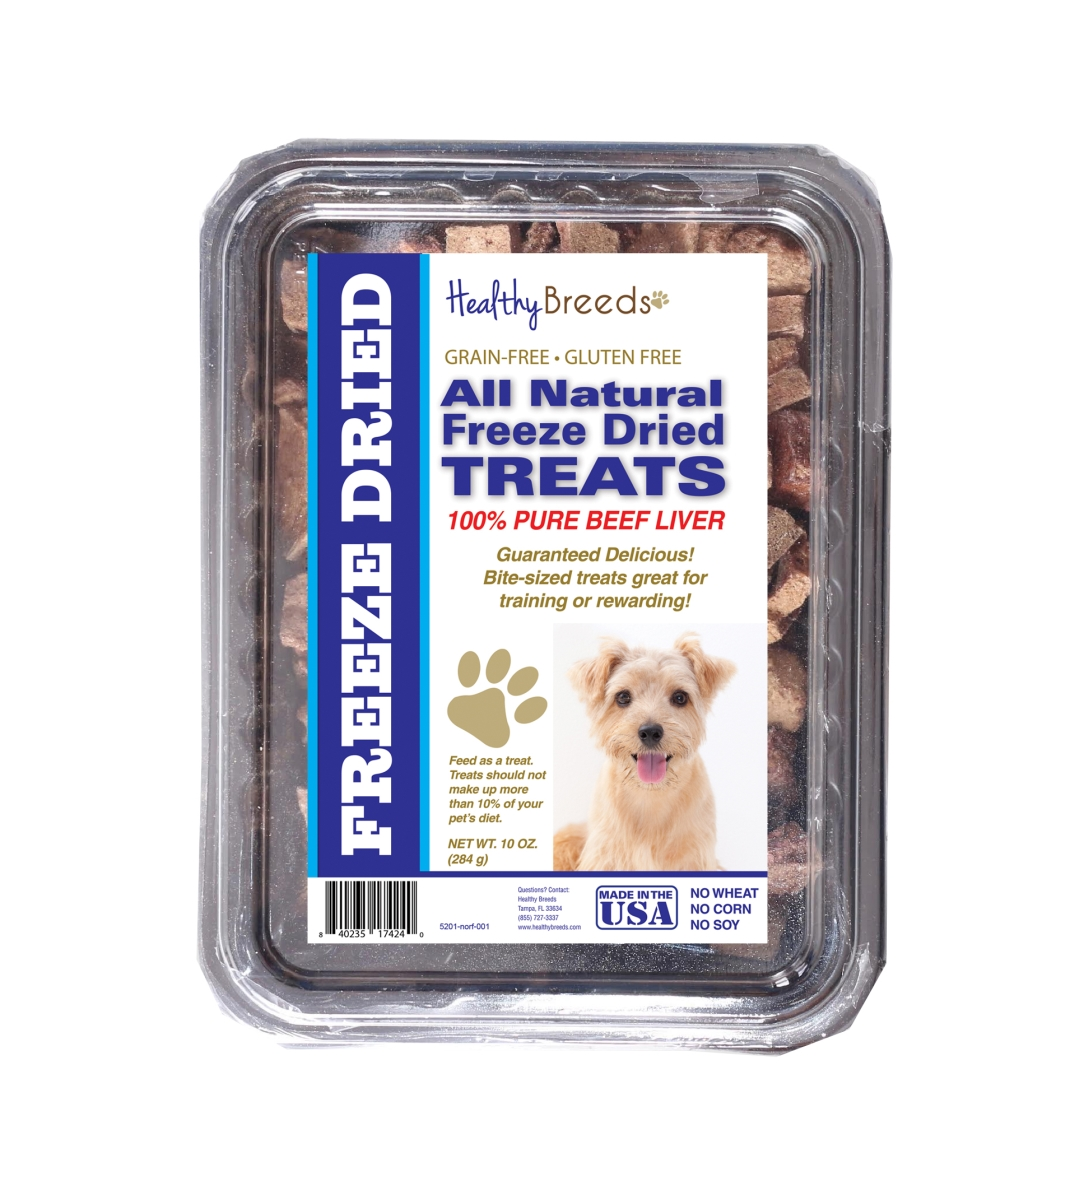 Healthy Breeds 840235174240 10 oz Norfolk Terrier All Natural Freeze Dried Treats Beef Liver